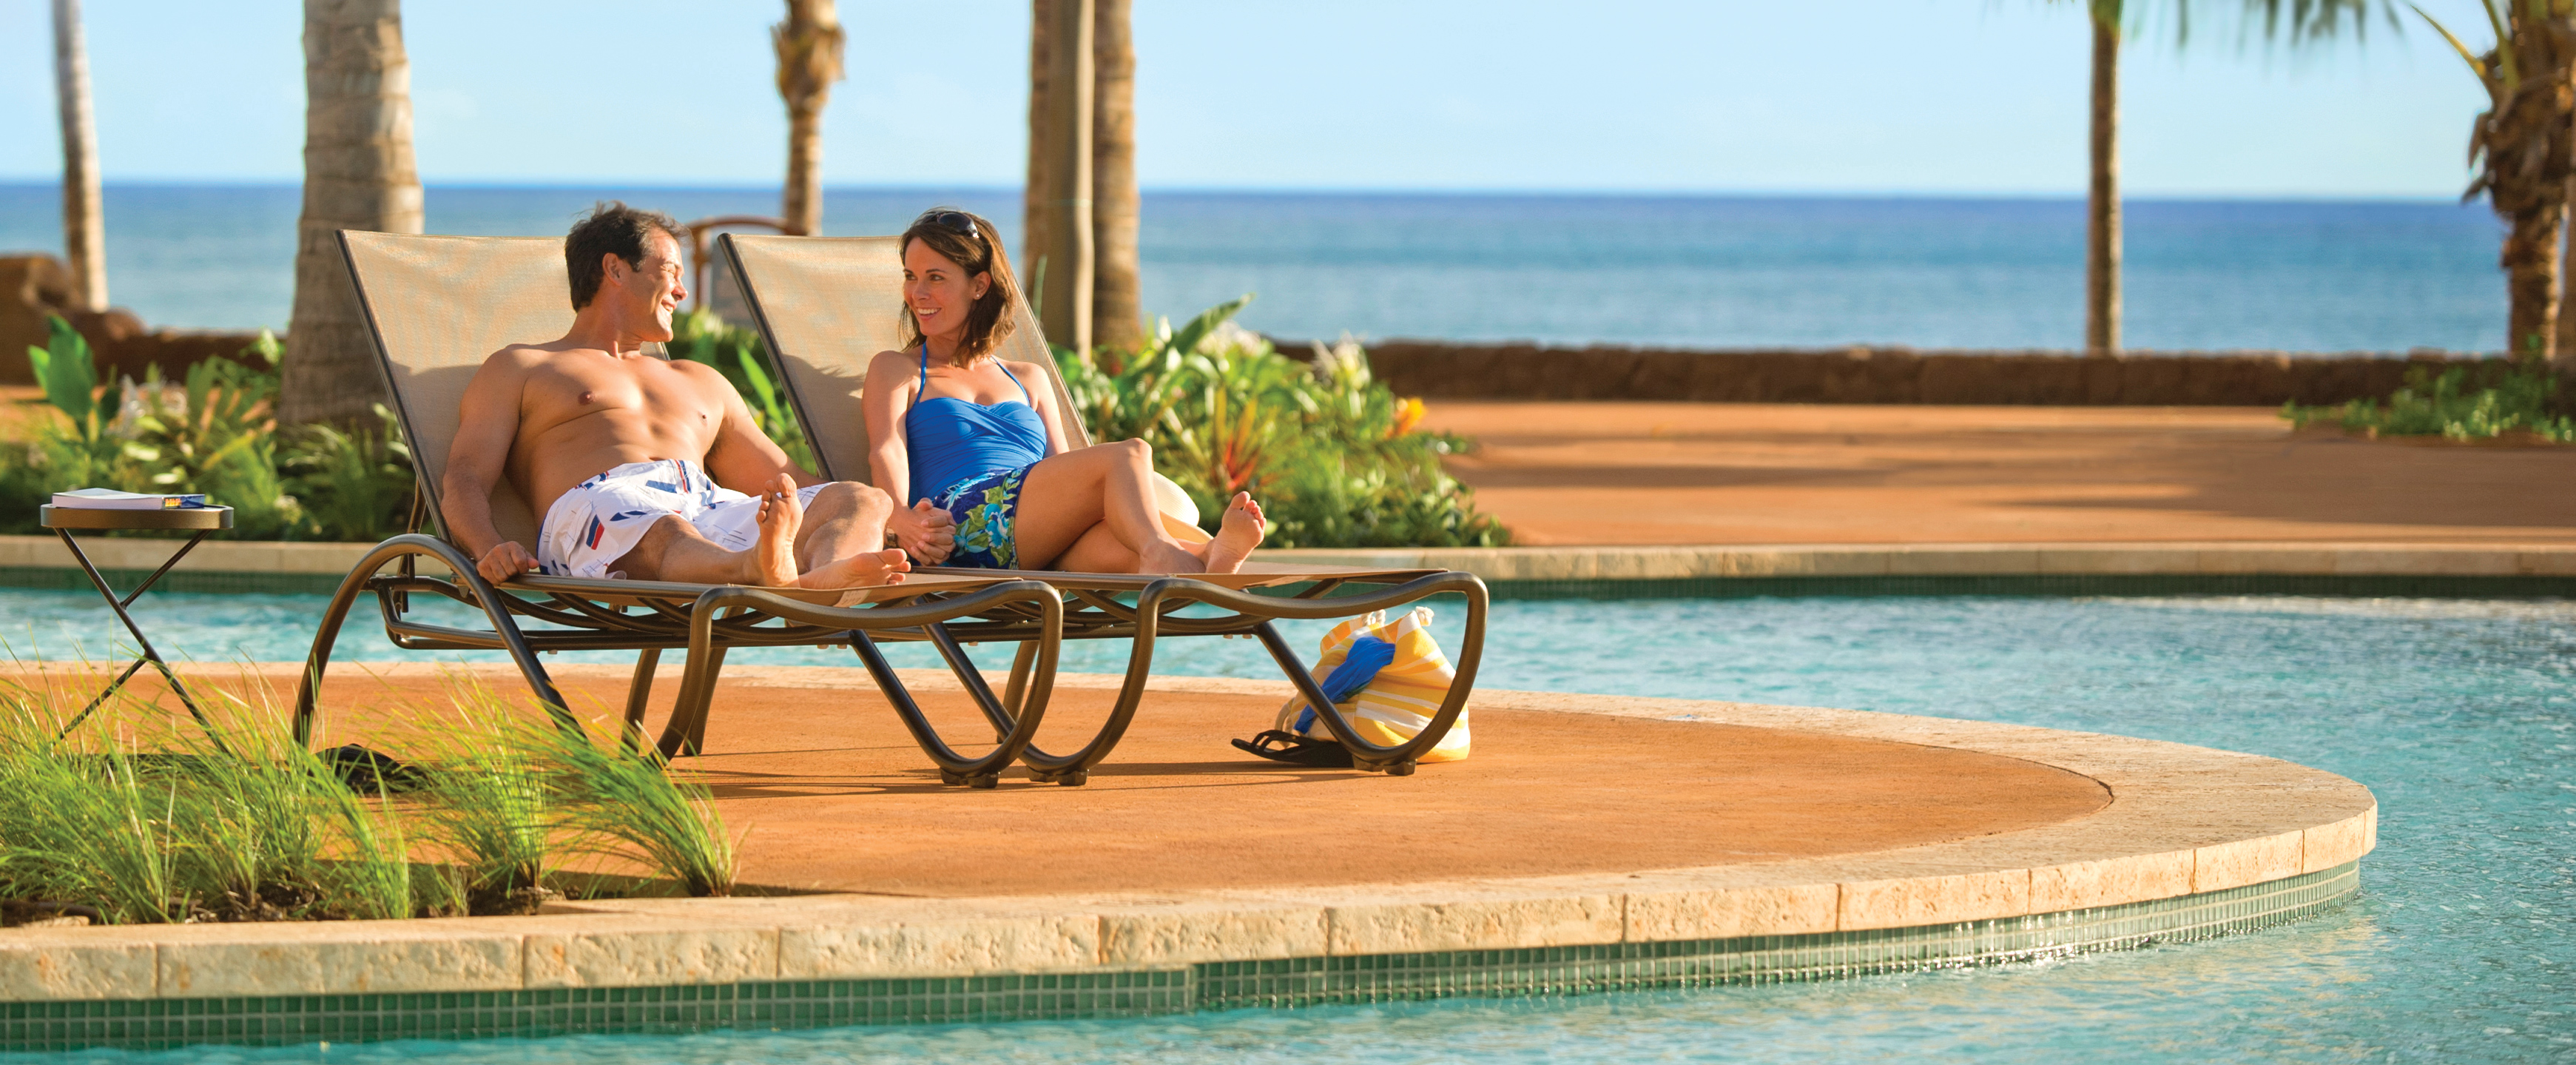 A swimwear-clad man and woman chat poolside on lounge chairs while an ocean view stretches beyond